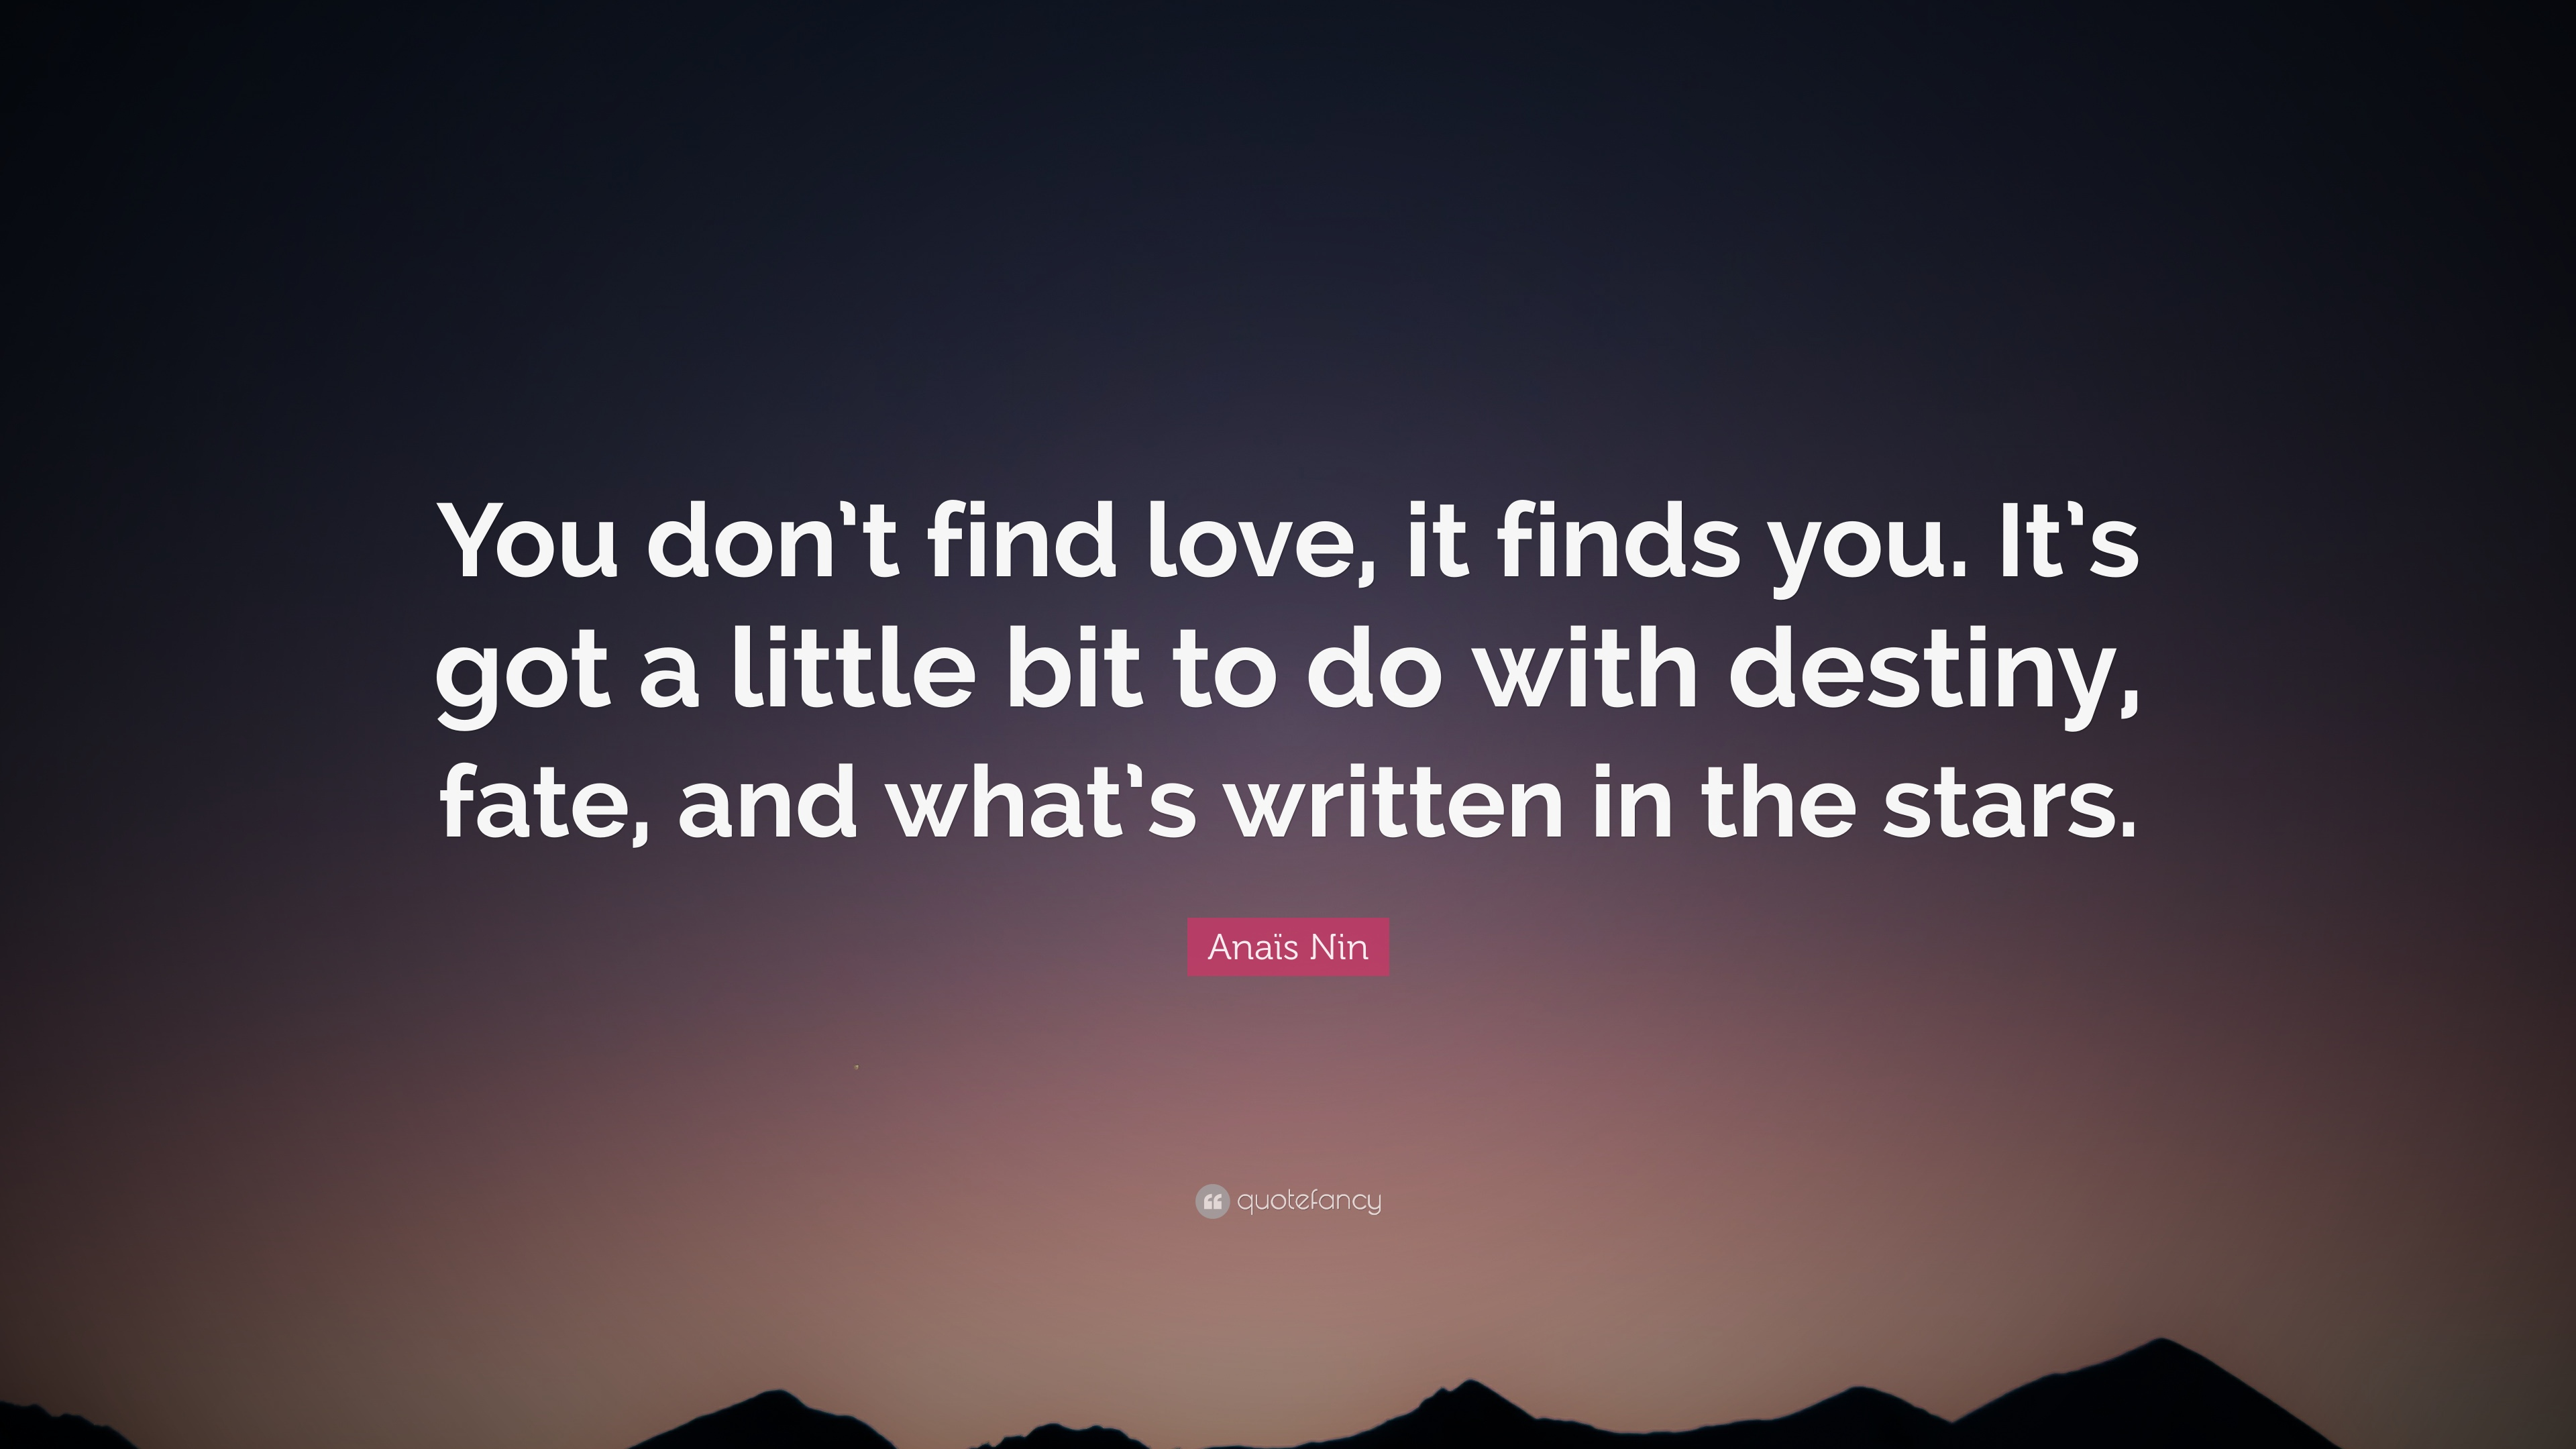 Anaïs Nin Quote: U201cYou Donu0027t Find Love, It Finds You.